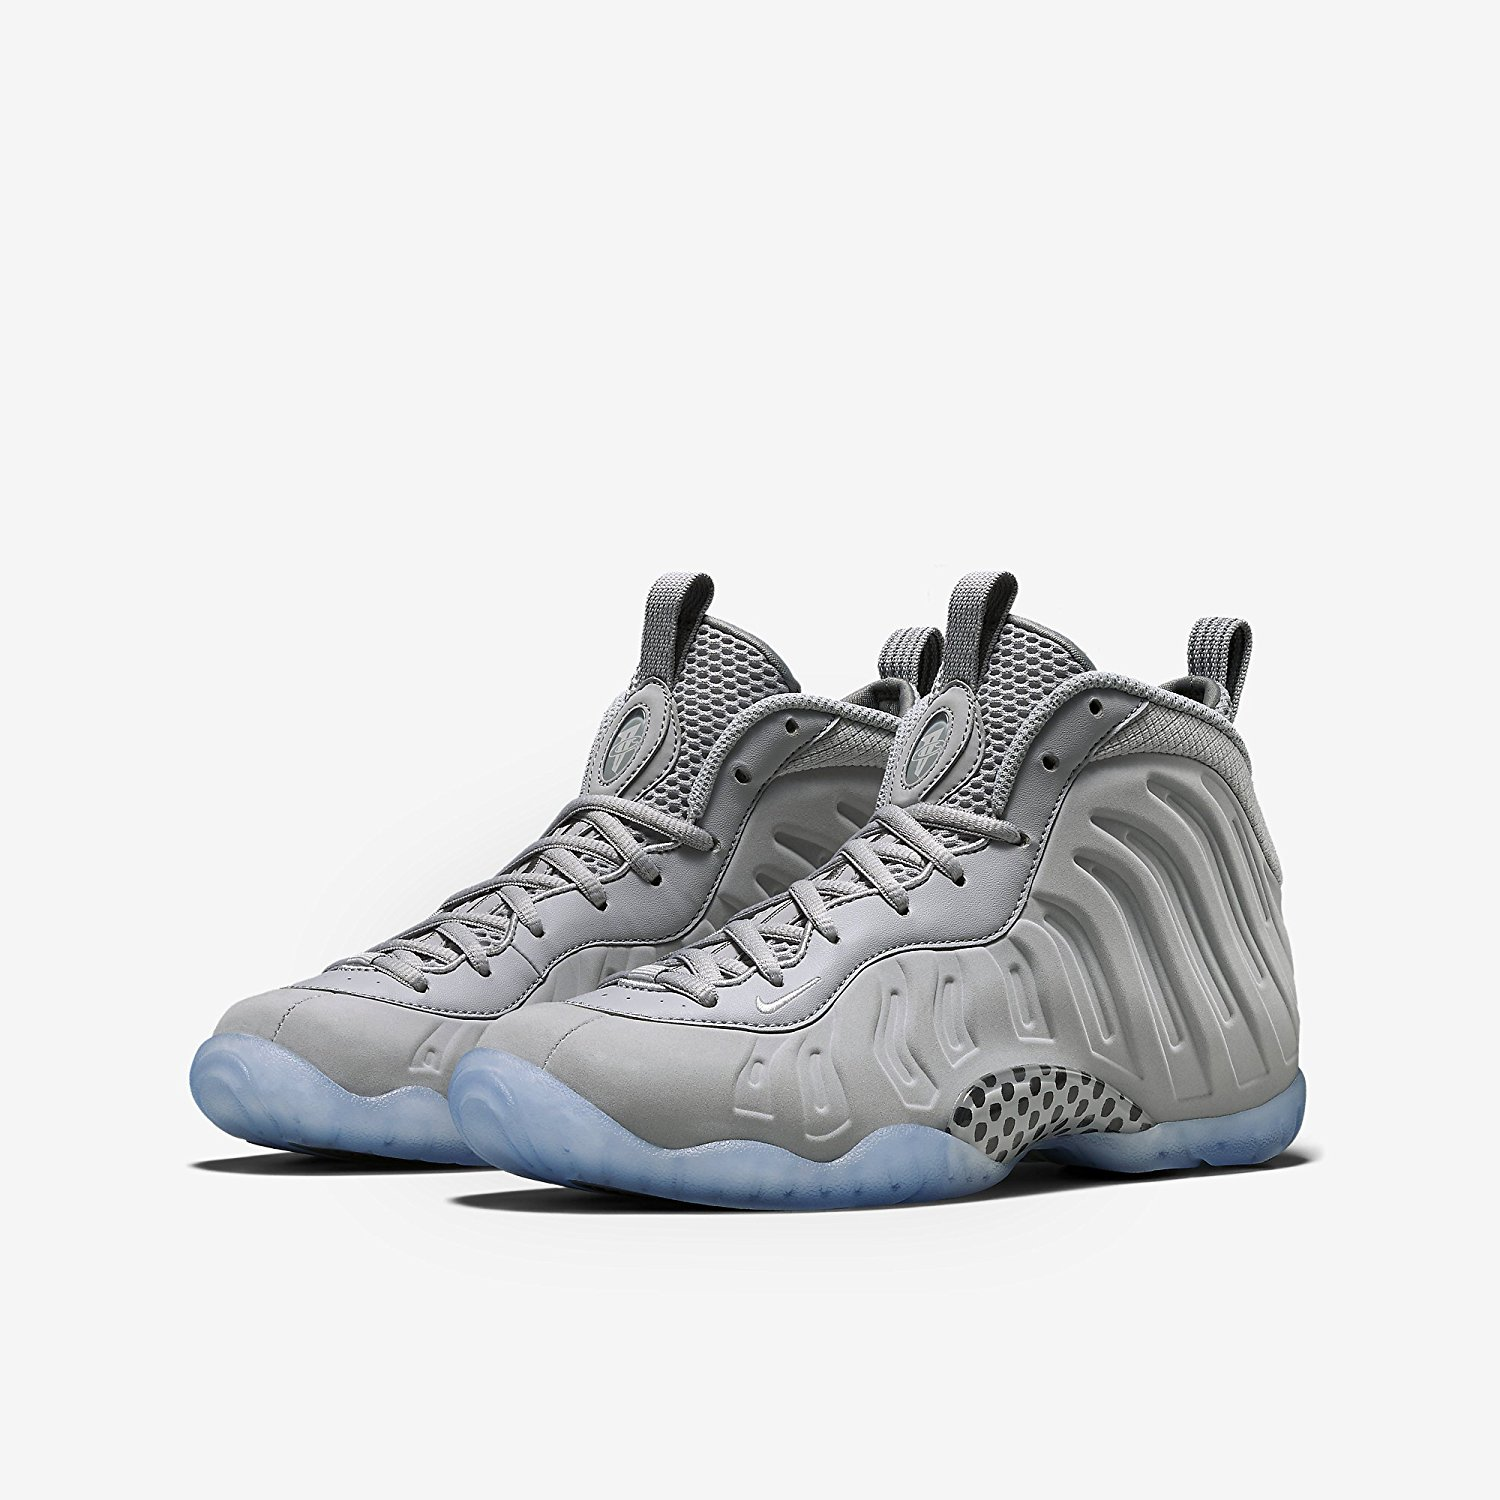 37f598808865c Nike Air Foamposite Little Posite One Grey Suede Grade School  Grey Black White